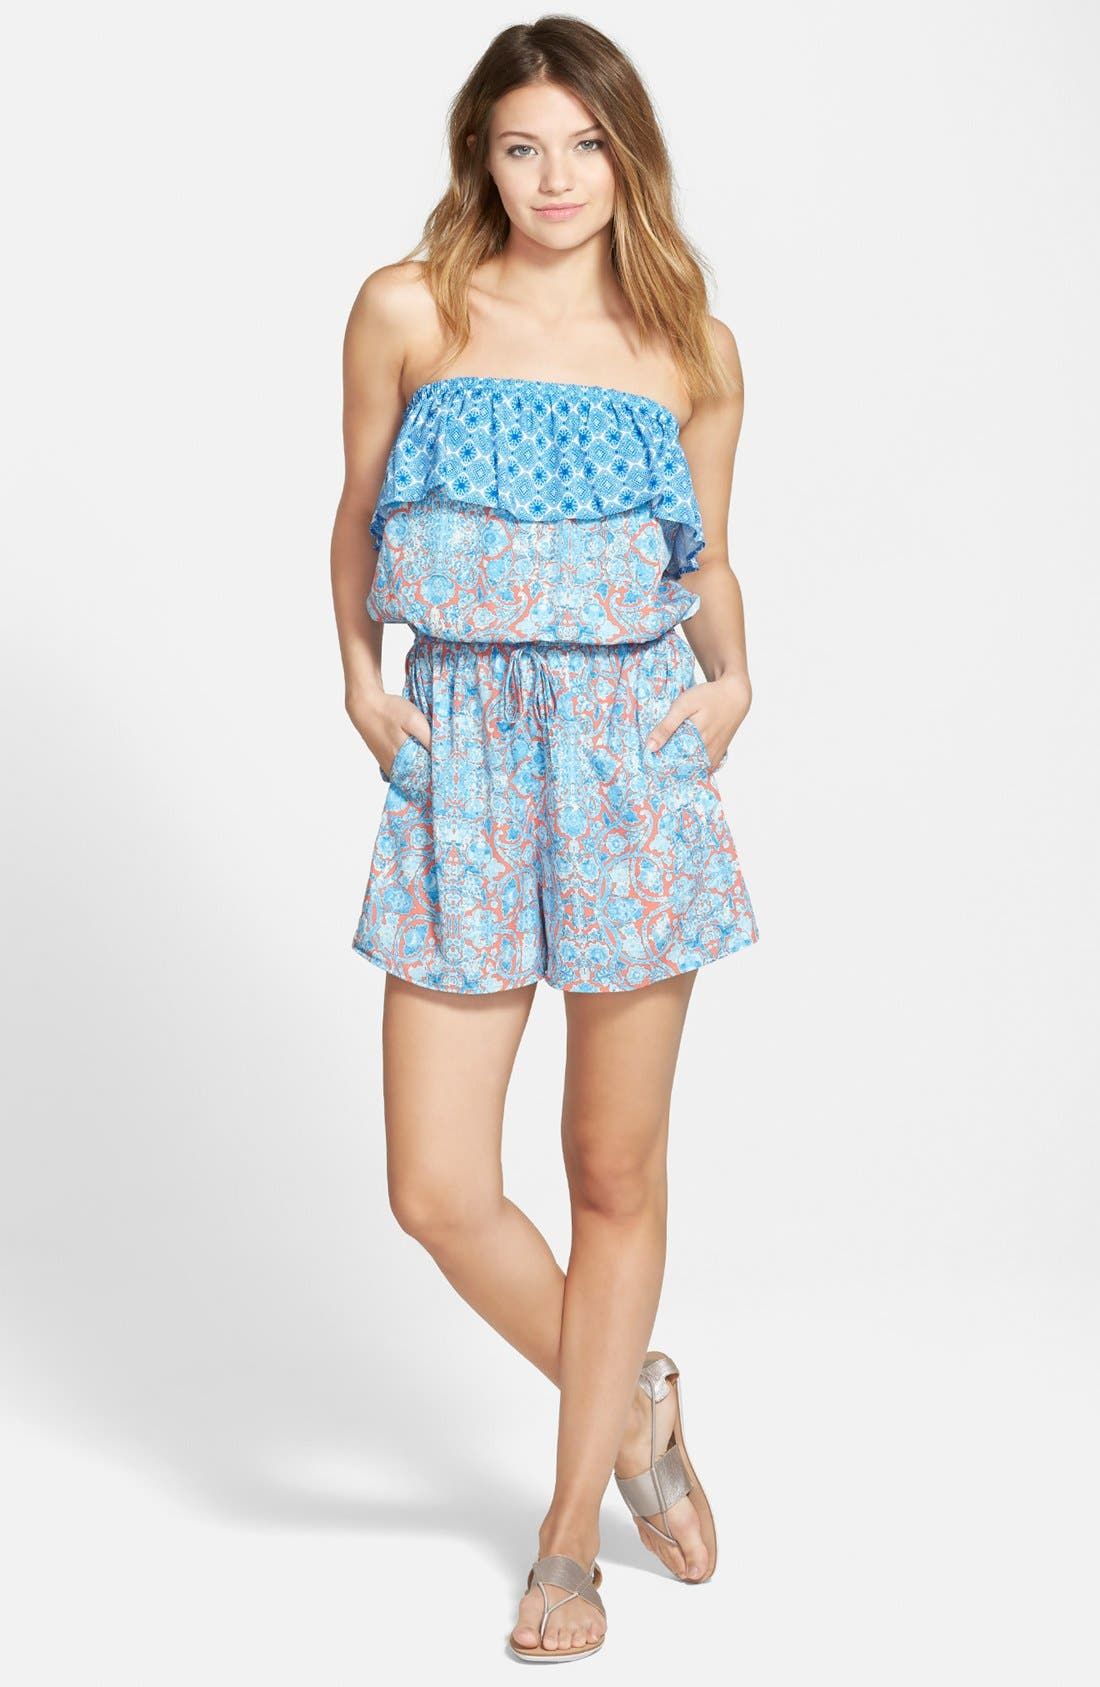 Main Image - Zoe and Rose Print Strapless Romper